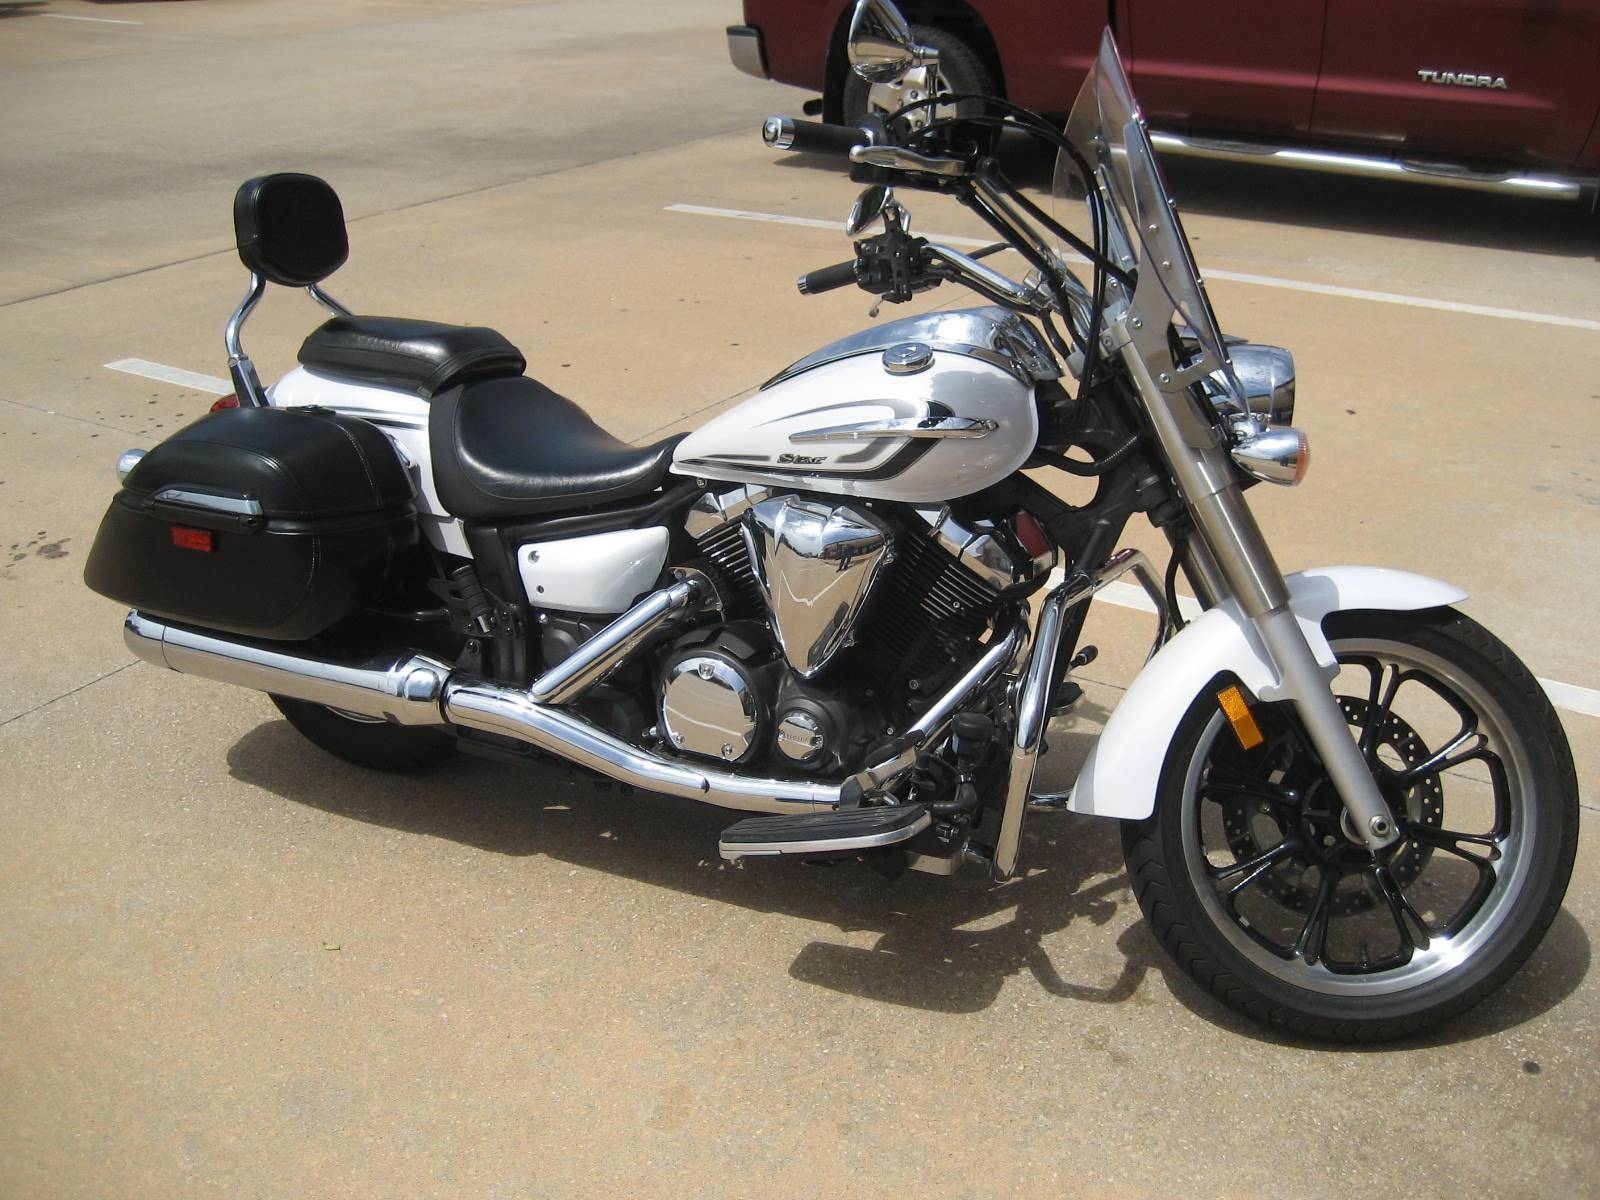 2013 Yamaha V Star 950 in Shawnee, Oklahoma - Photo 1